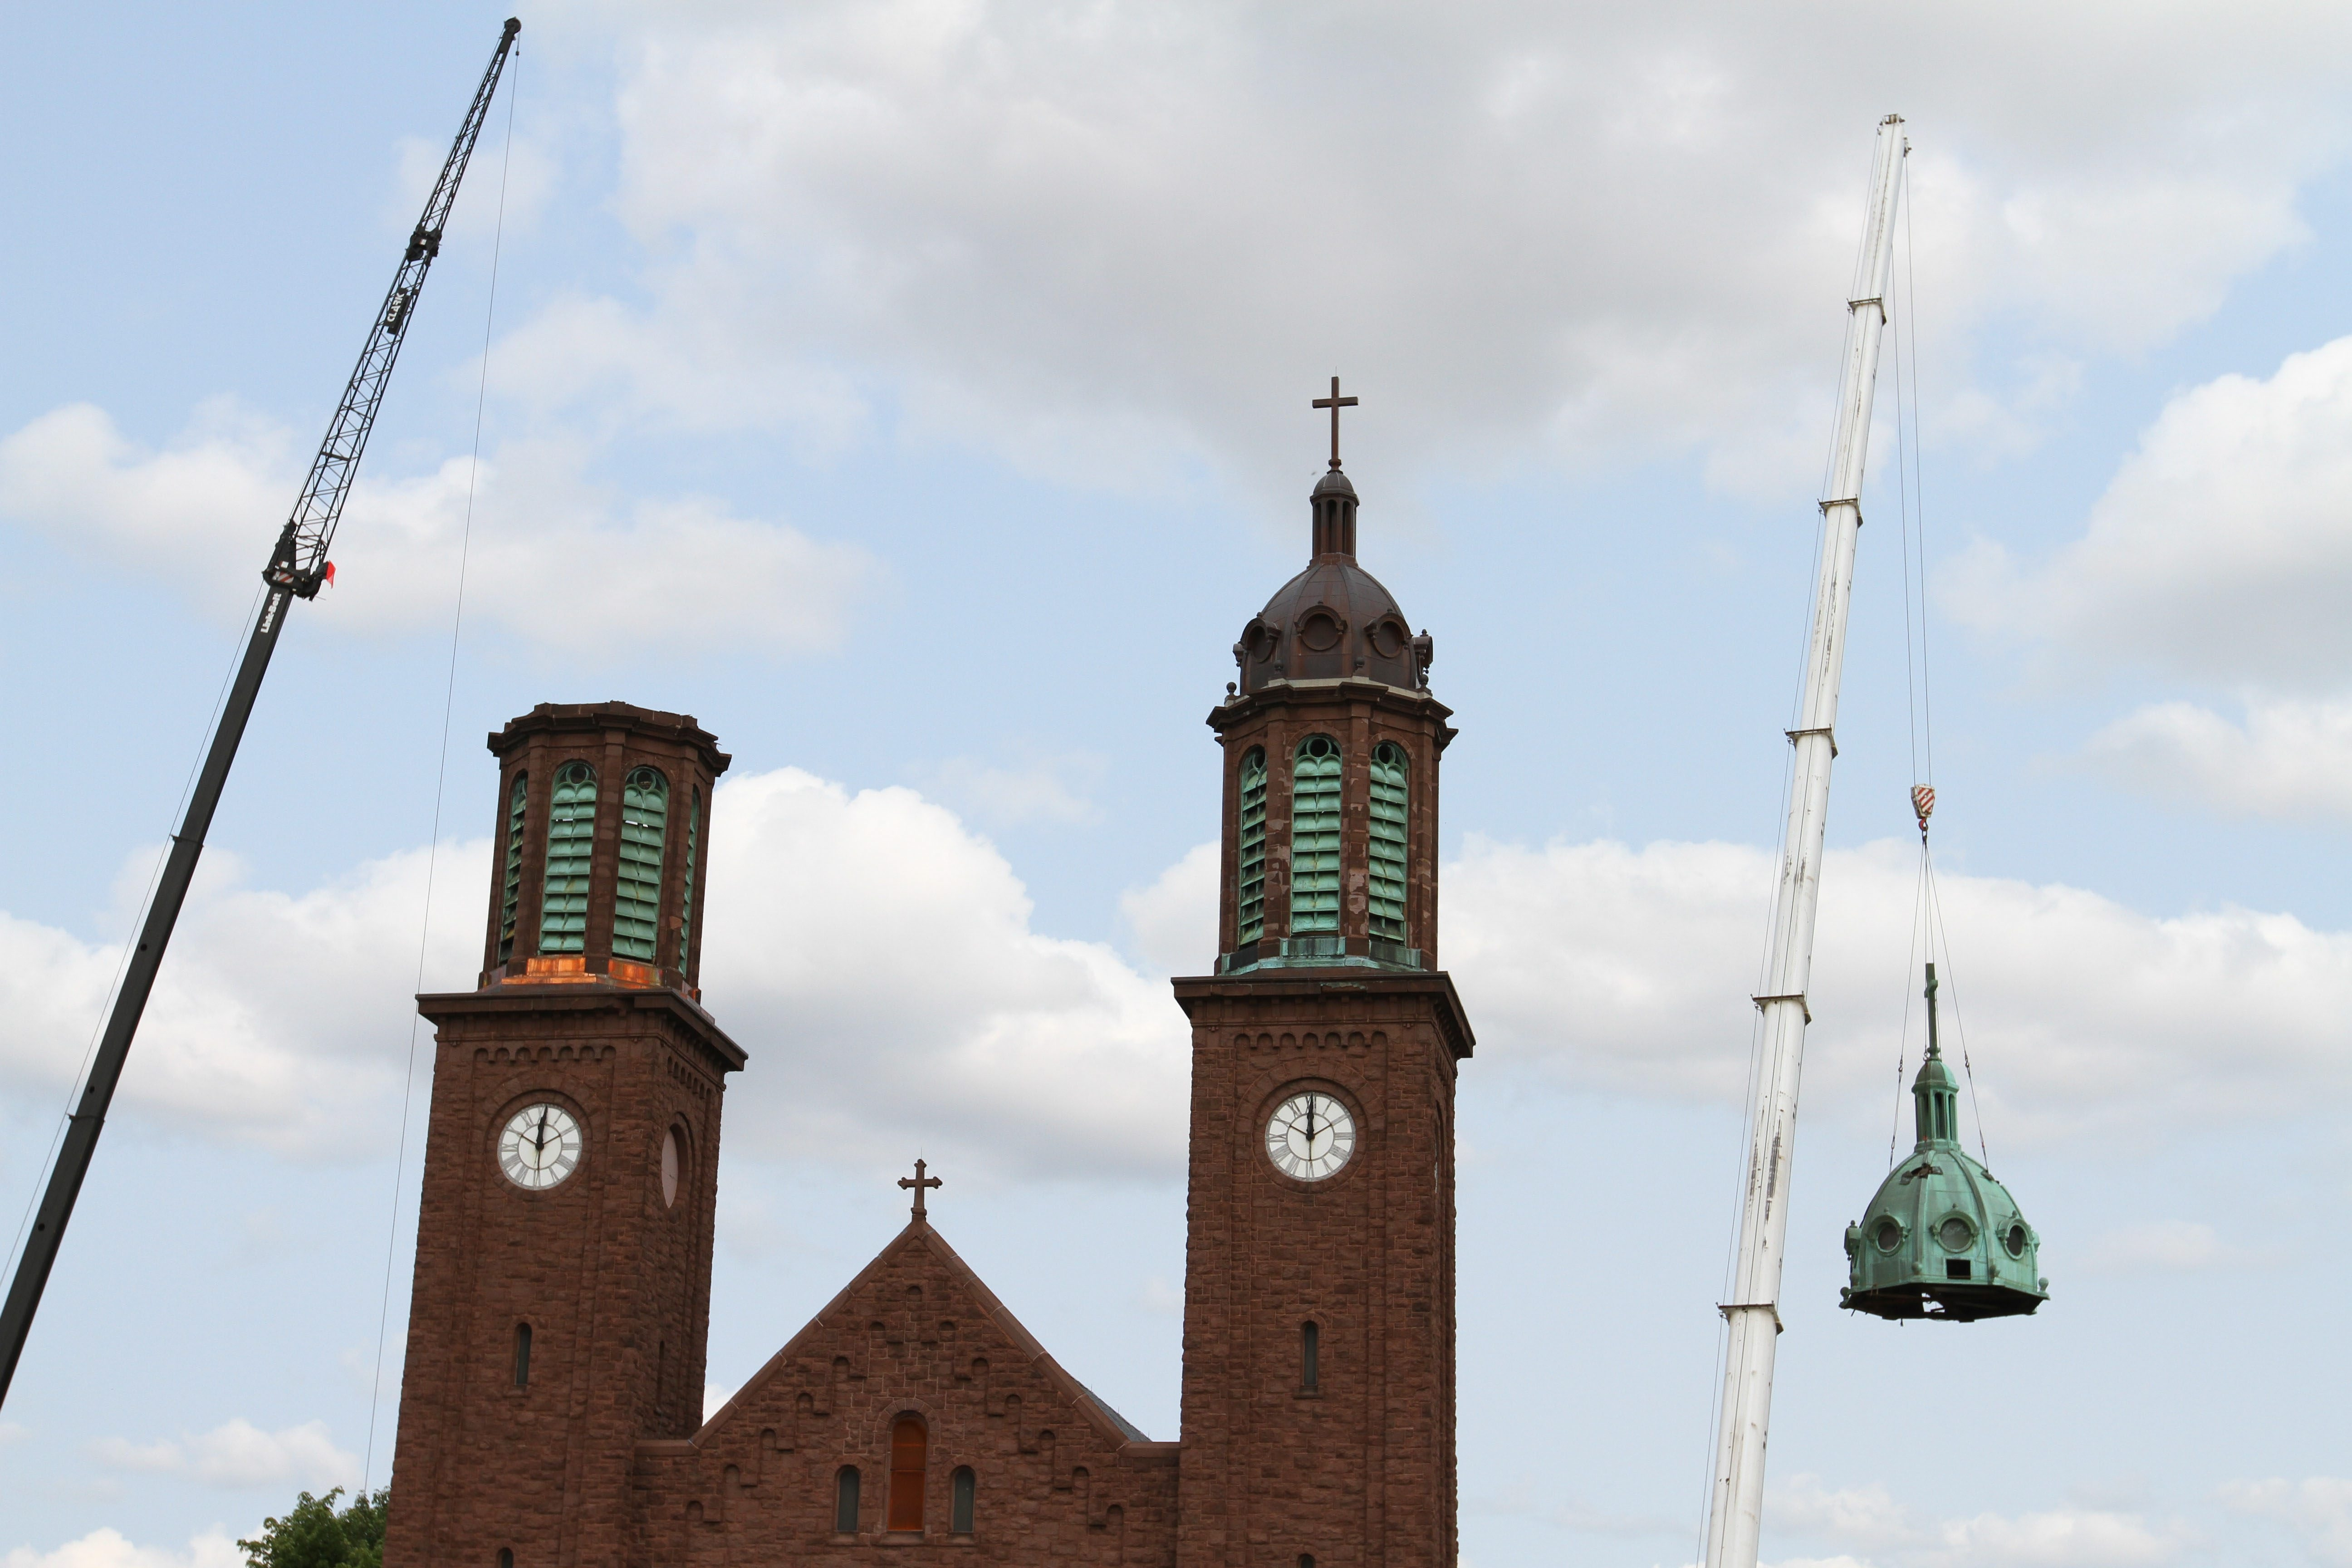 Crews work on removing one of the domes on Corpus Christi Church in Buffalo on Aug. 8. (Mark Mulville/Buffalo News)